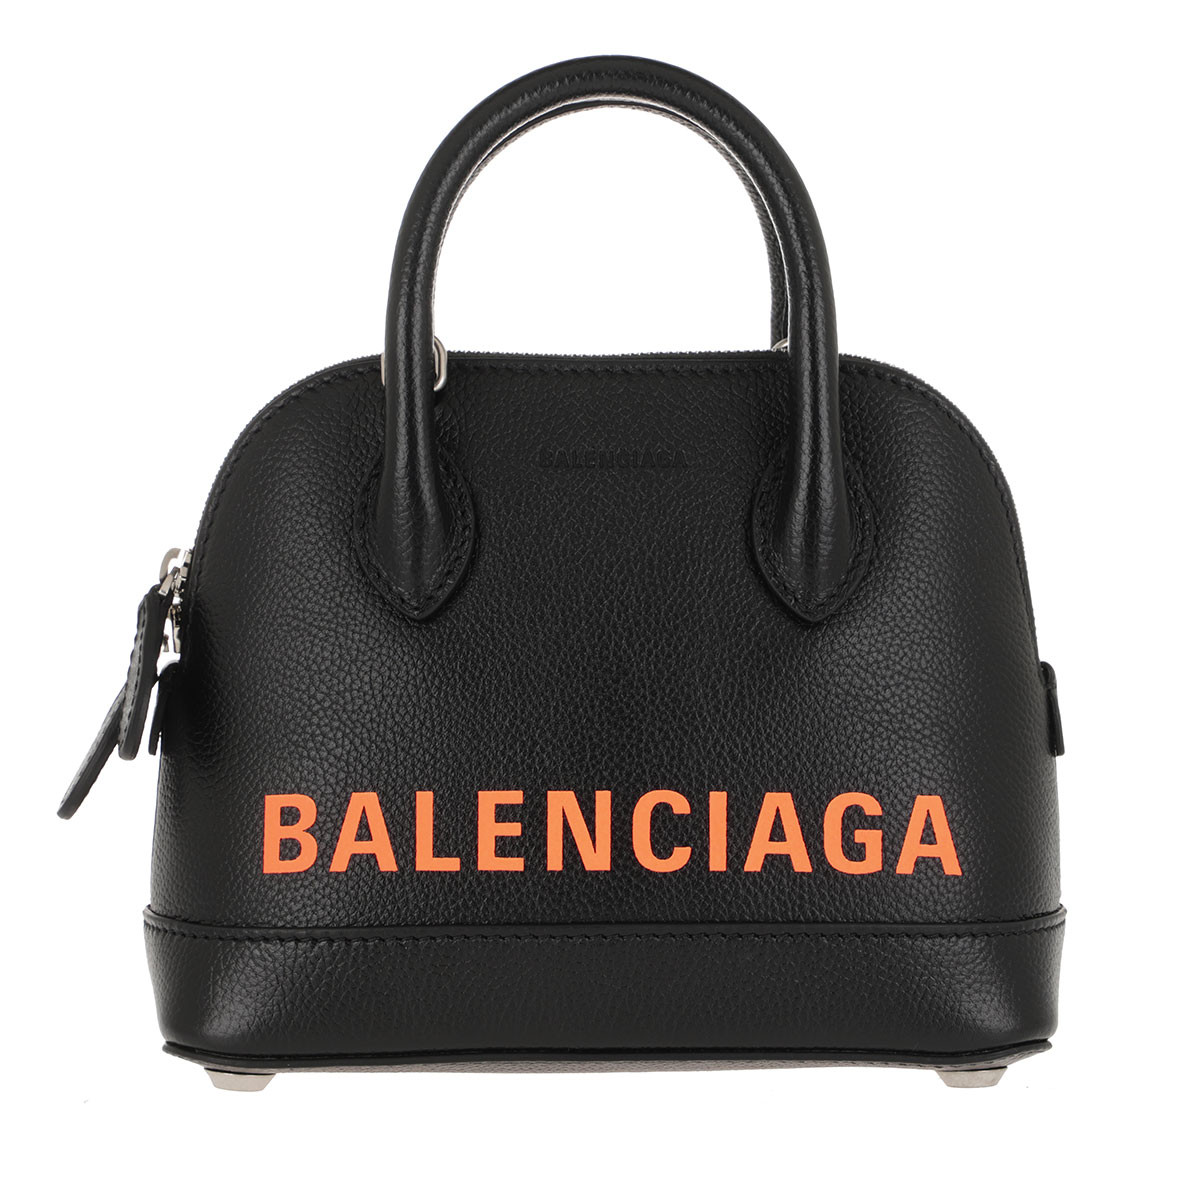 Balenciaga Umhängetasche - Ville XXS Satchel Bag Leather Black/Fluo Orange - in schwarz - für Damen